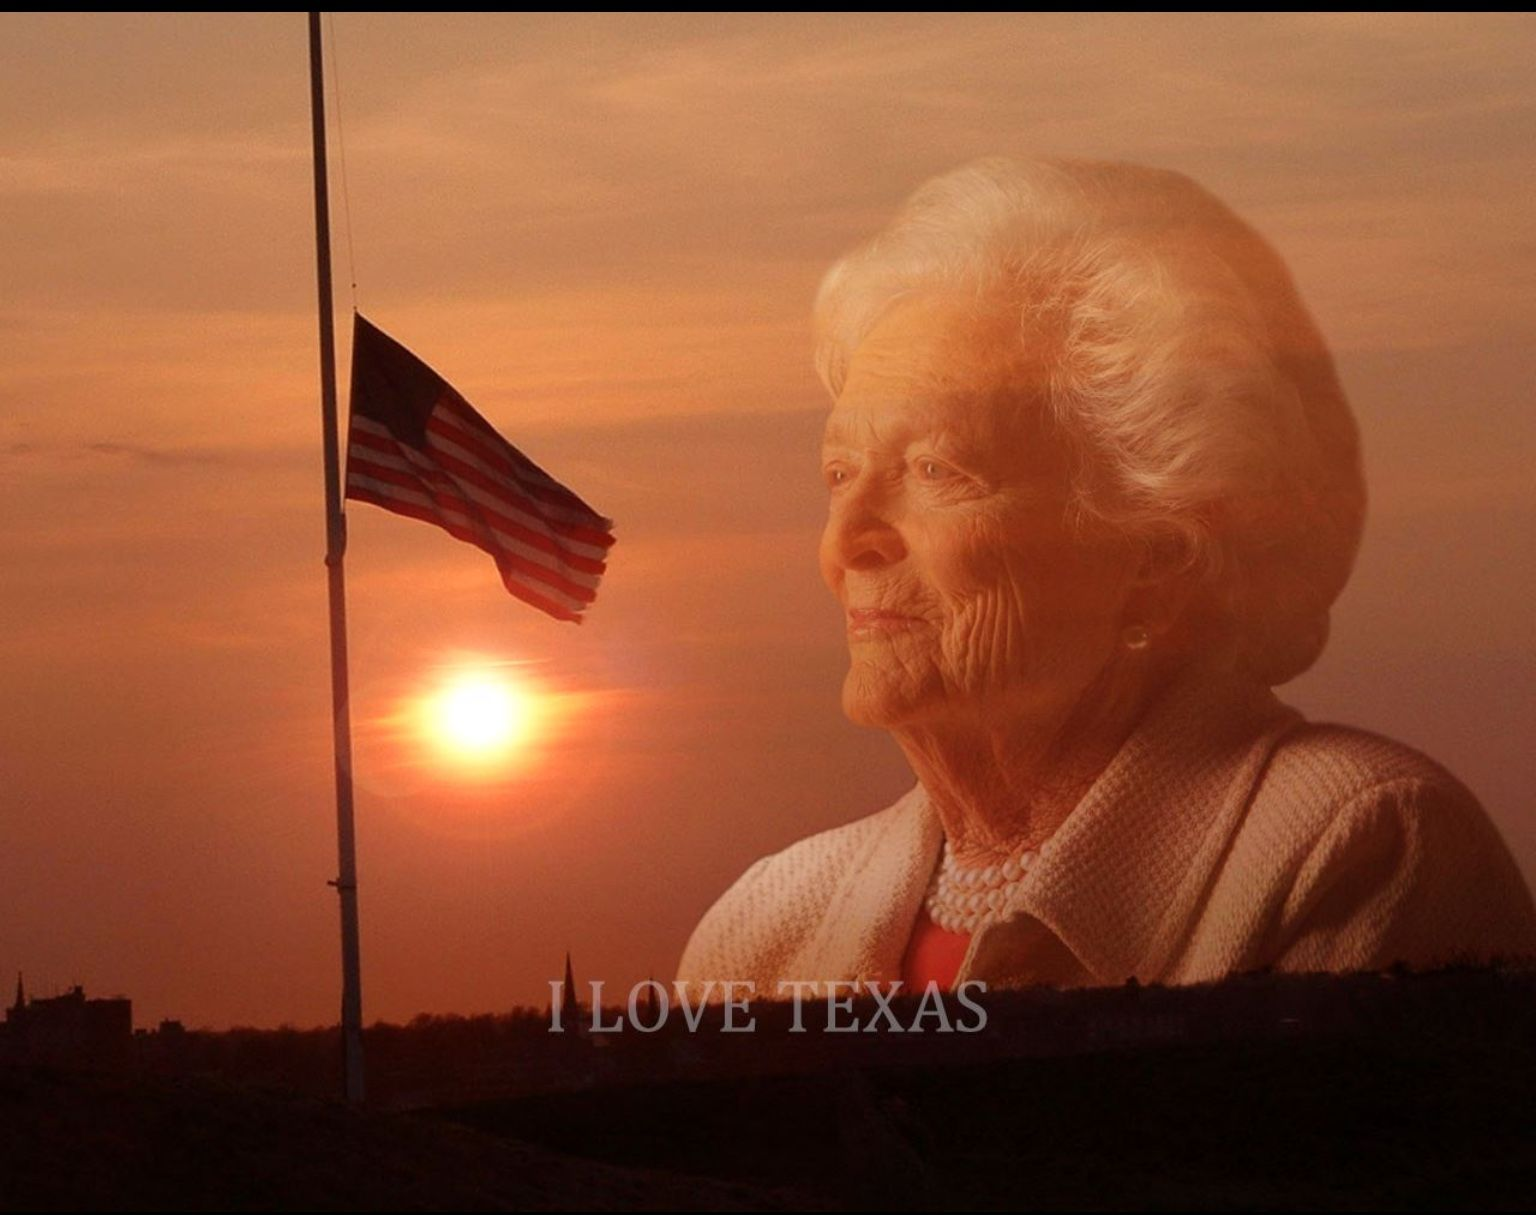 God bless former First Lady Barbara Bush. Rest in peace, good soul.